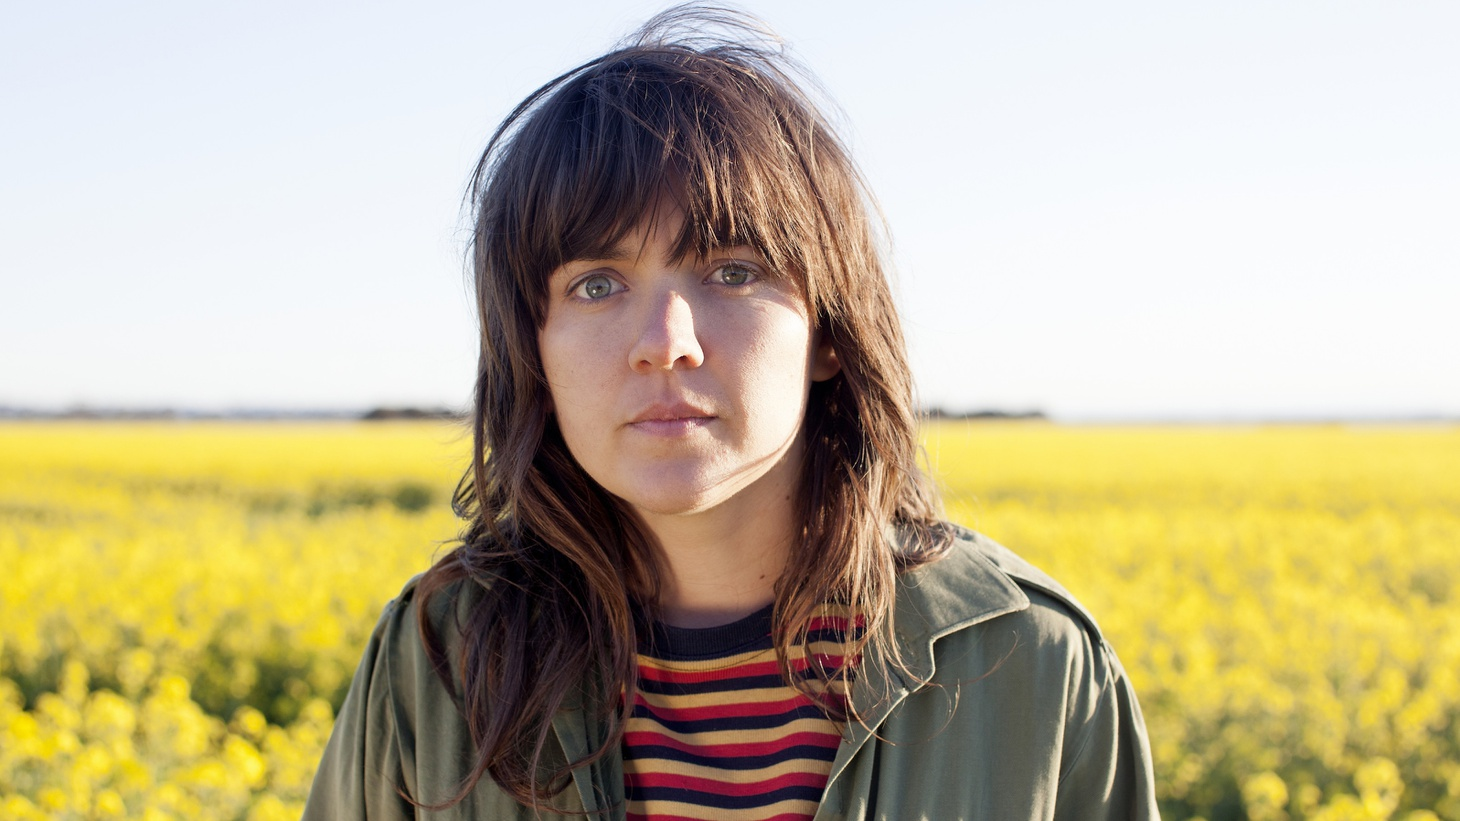 Raucous raw energy fuels Aussie singer and guitarist Courtney Barnett, who is one of the most buzzed about indie artists of the moment. We're thrilled to have her in studio to play songs from her new album on Morning Becomes Eclectic at 11:15am.